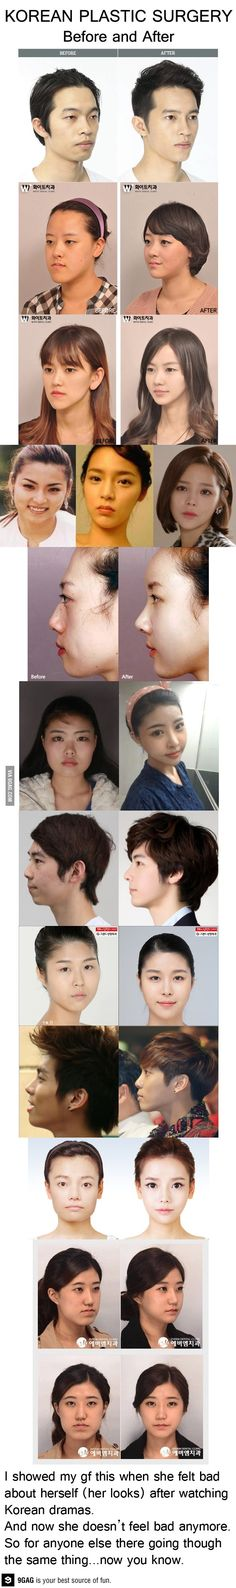 plastic surgery - Celebrity Plastic Surgery Before and After